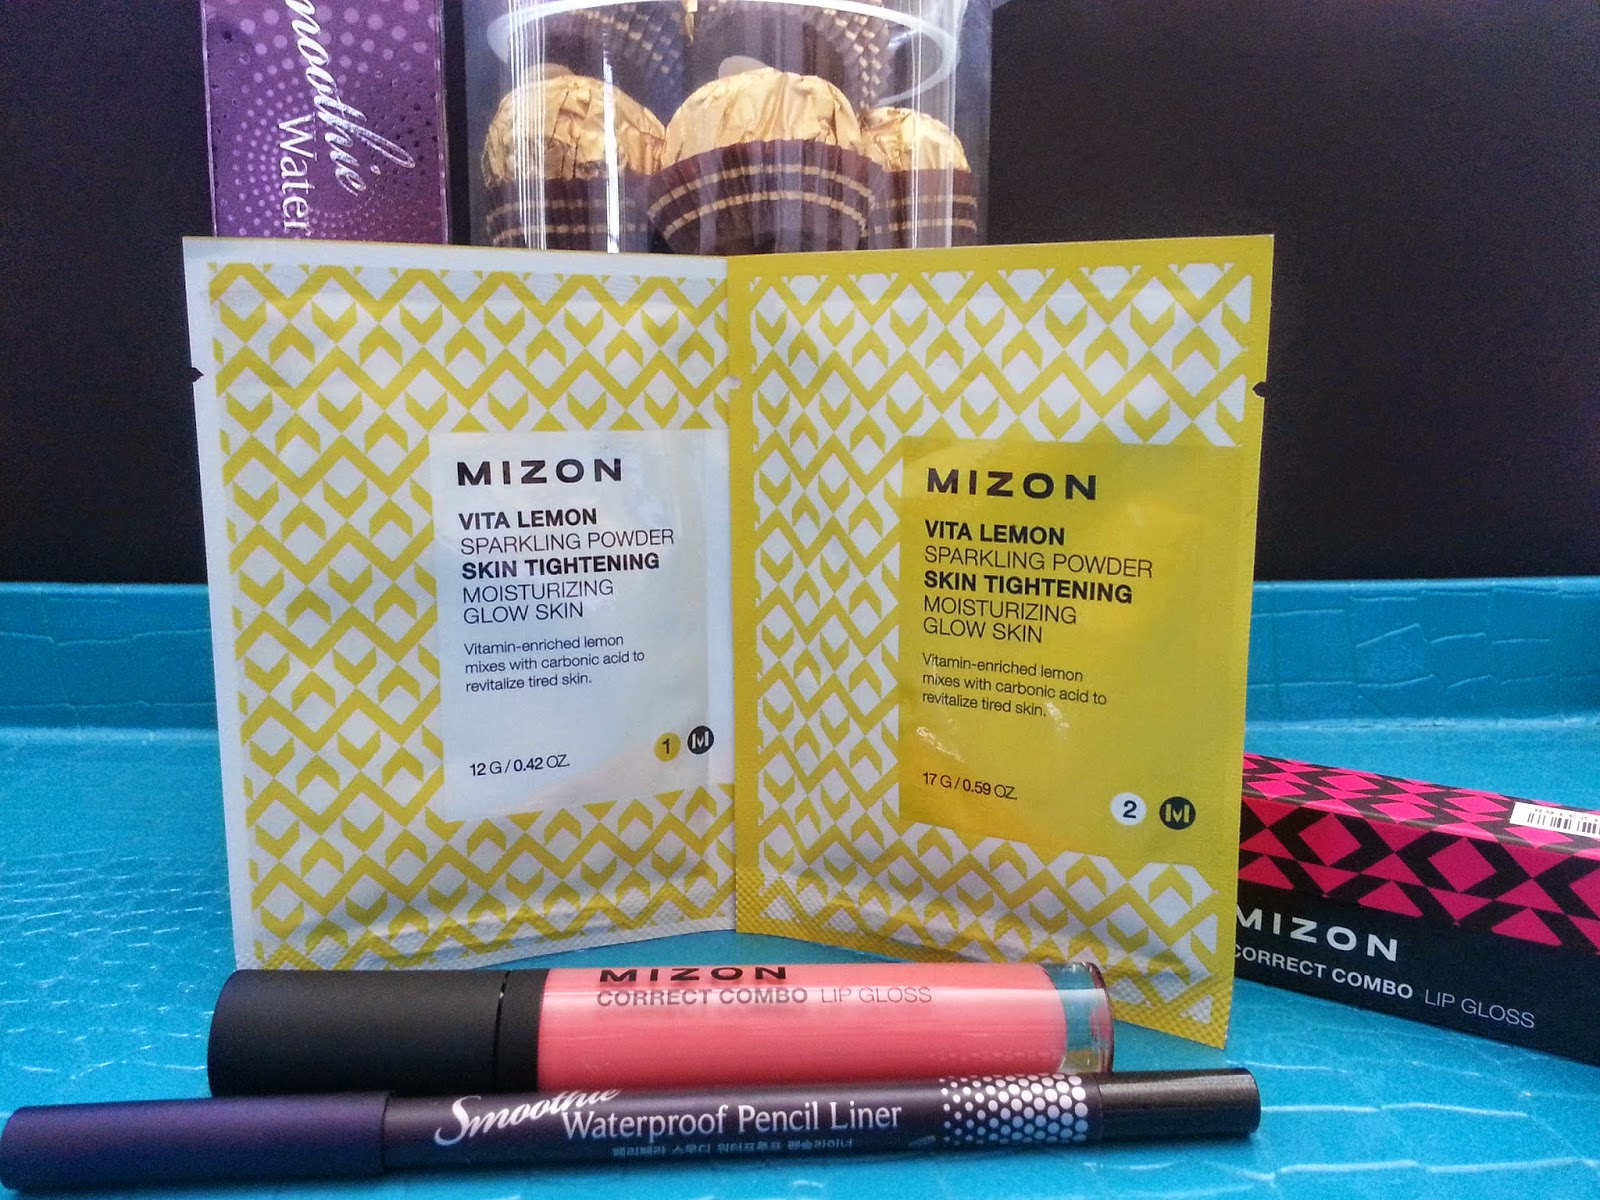 Mizon Vita Lemon Sparkling Powder, Peripera Smoothie Waterproof Pencil Liner, Mizon Correct combo lip gloss